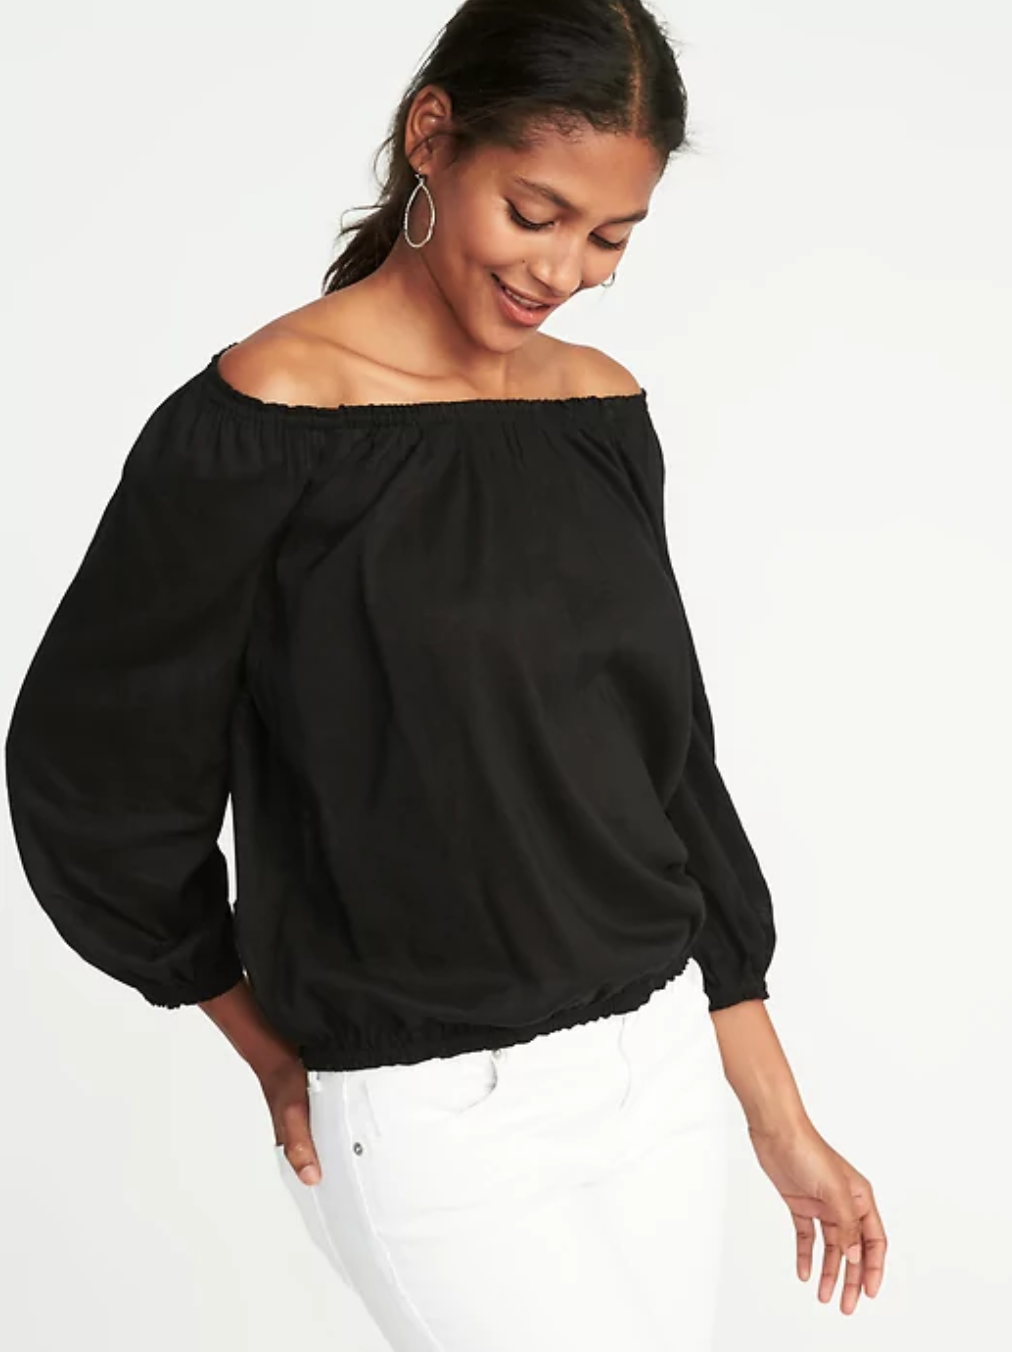 577c650e14349 Old Navy comes with all the comfy and casual tops and dresses one could  ever hope for — and at prices that are oh so nice on the wallet!